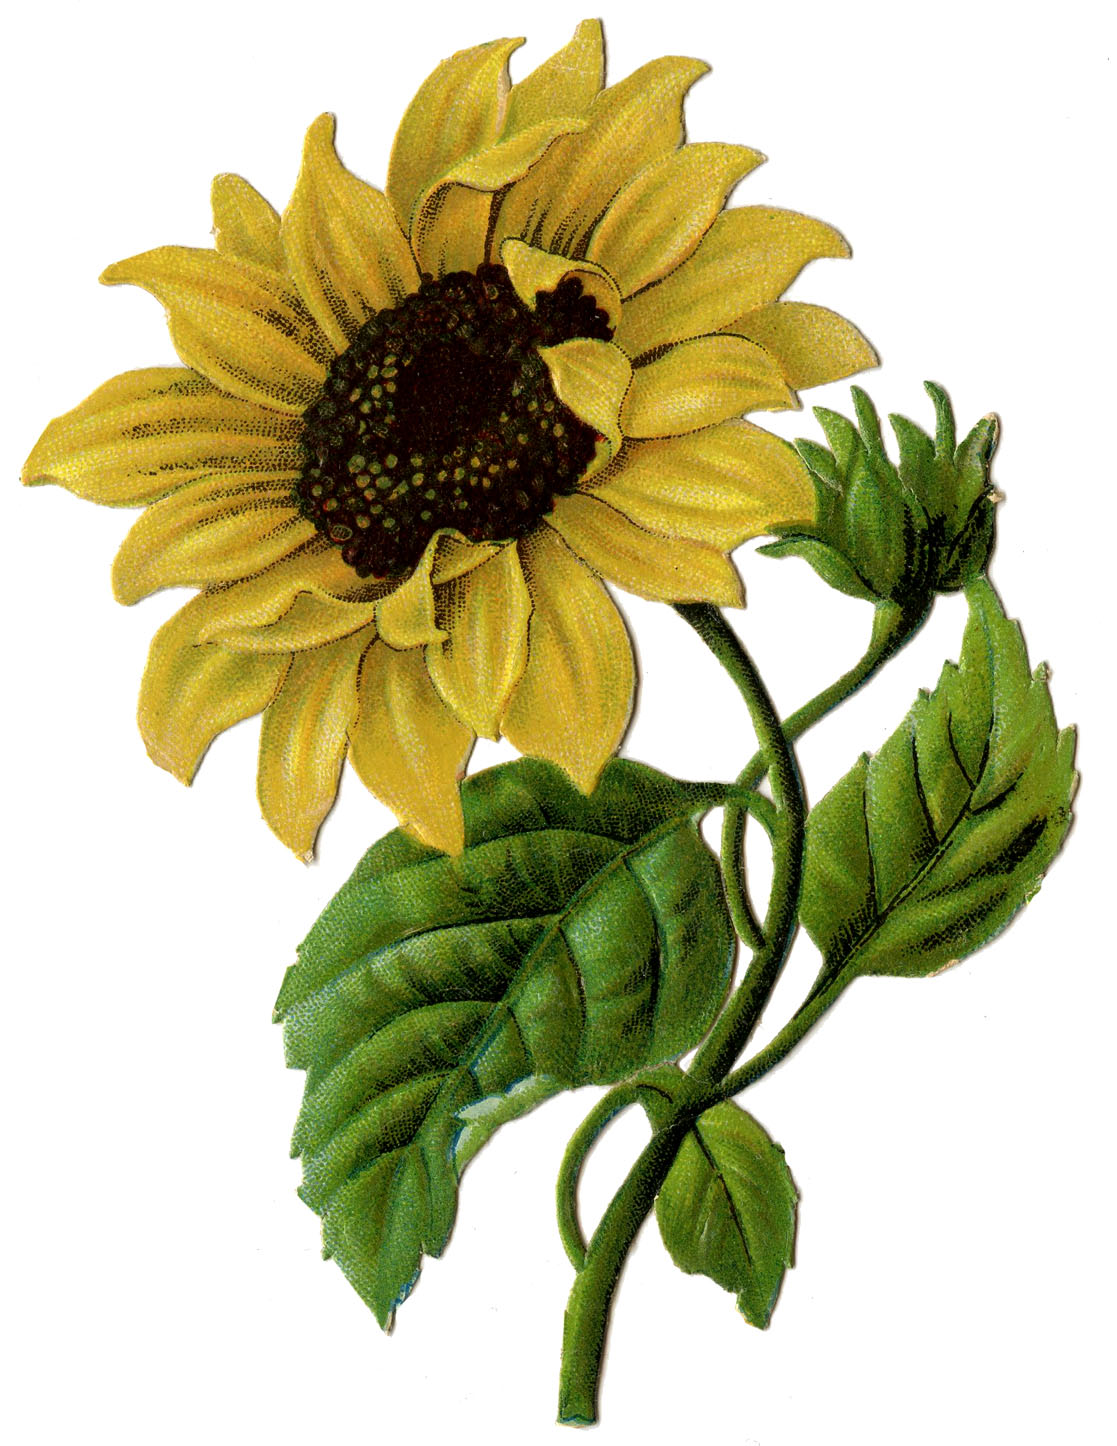 Top Vintage Sunflower Clip Art Free 1117 x 1446 · 293 kB · jpeg